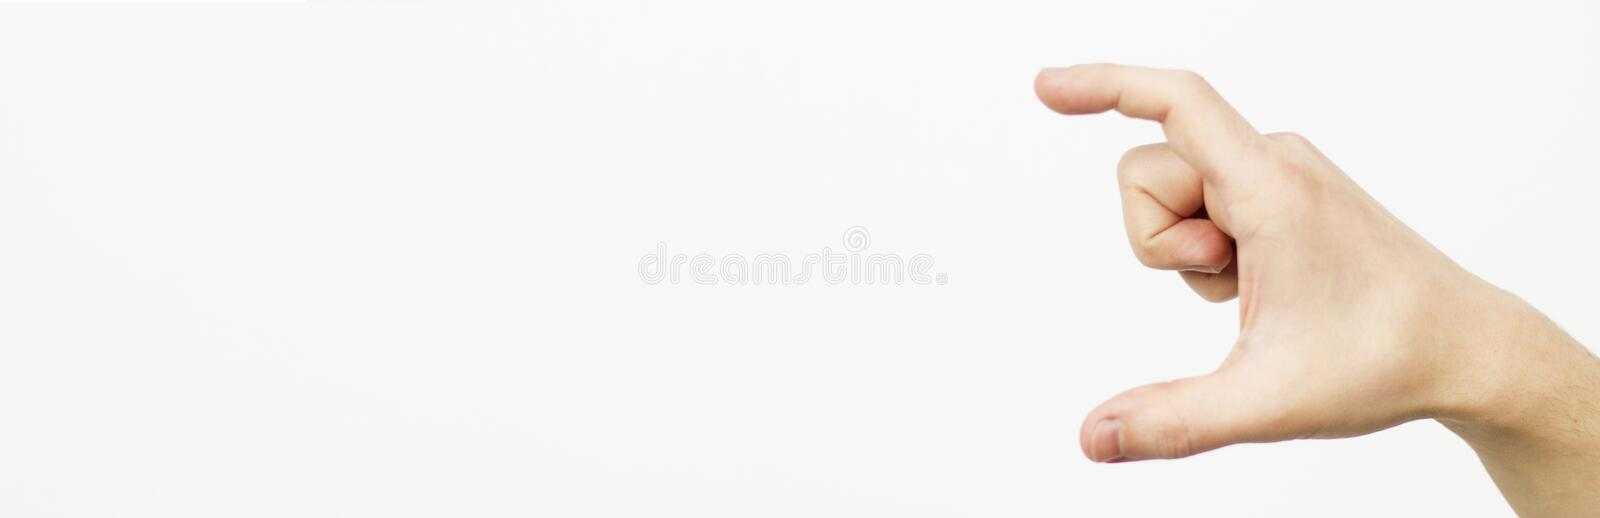 Hand isolated at white background making size measuring gesture - human hand measuring invisible items. Isolated on white. Copy. Space. Banner of billboard stock photo